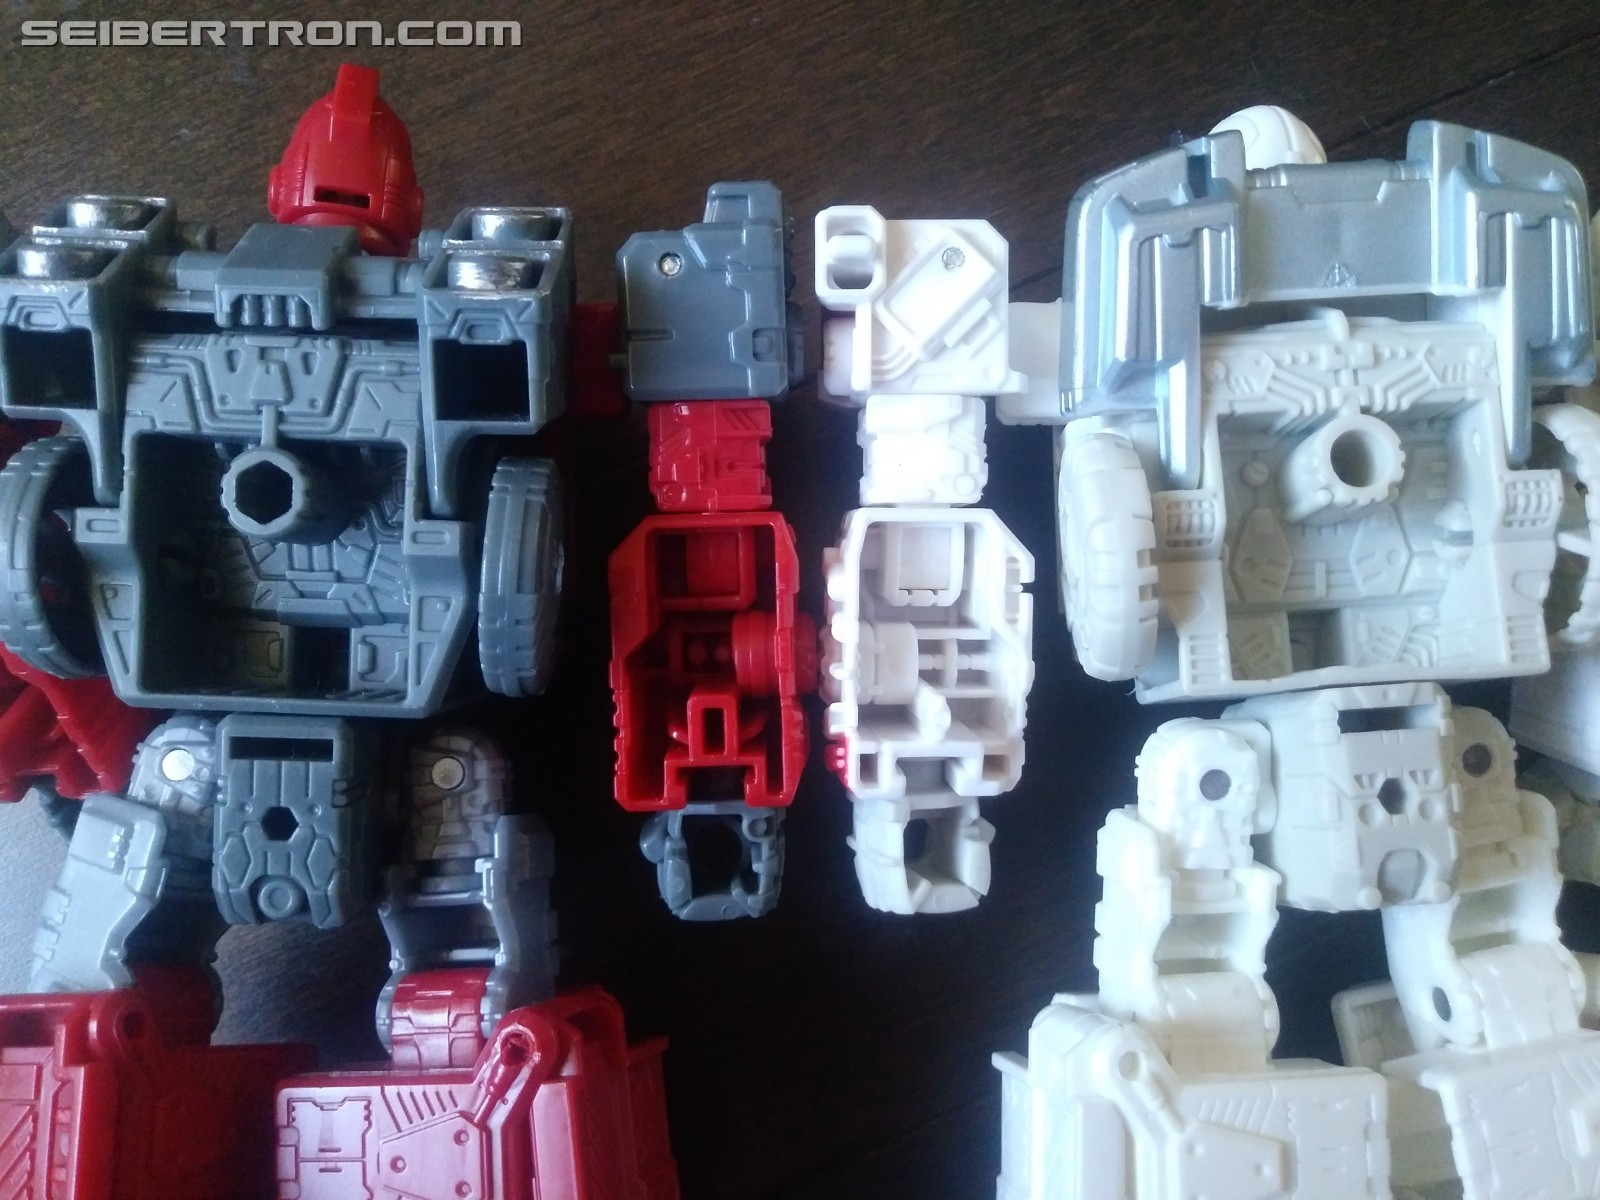 Transformers News: Images Showing Just How Different Siege Ratchet is from Ironhide and New Sculpted Detail